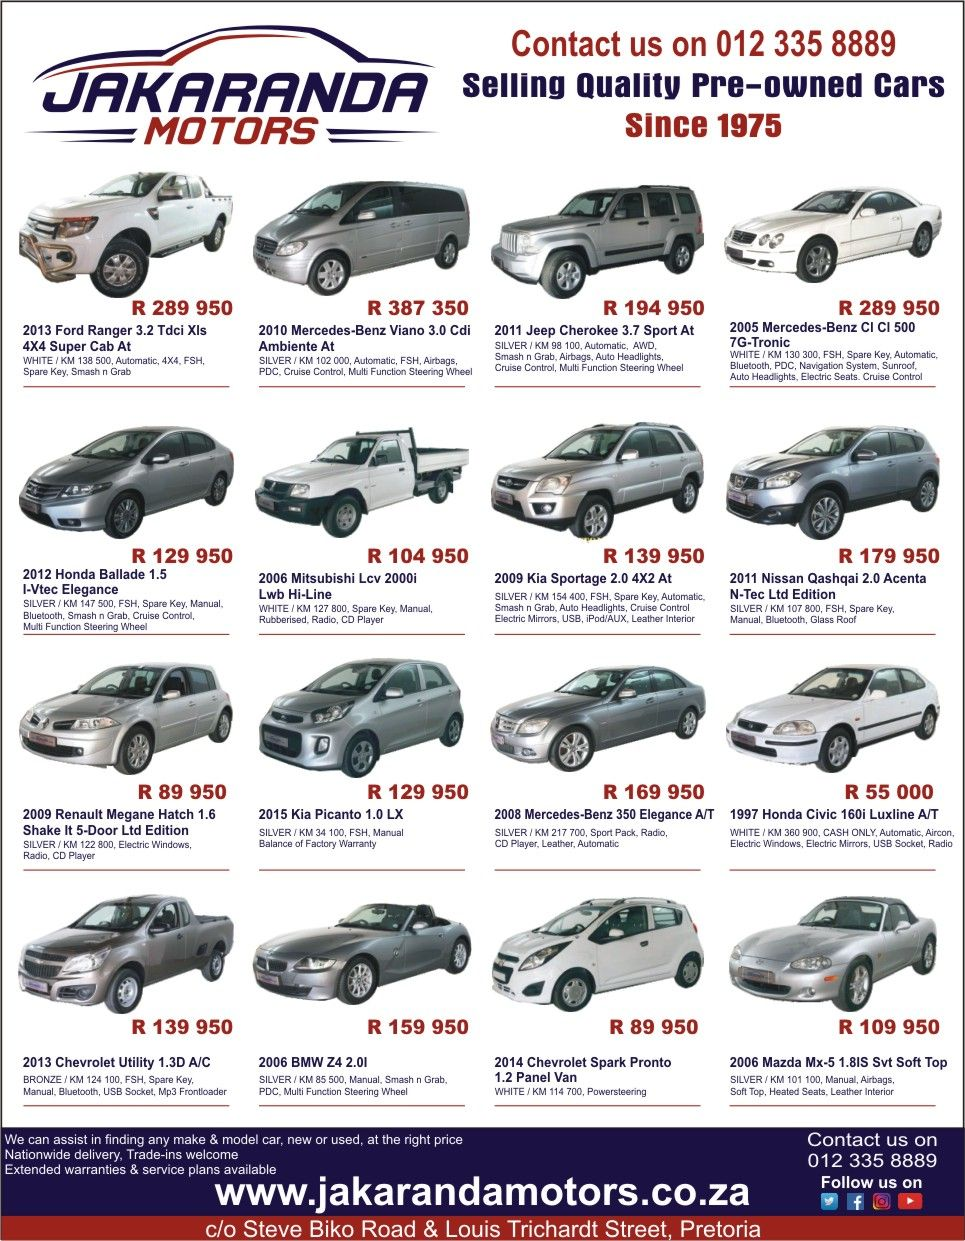 Pre Owned Cars >> Jakaranda Motors Selling Quality Pre Owned Cars Since 1975